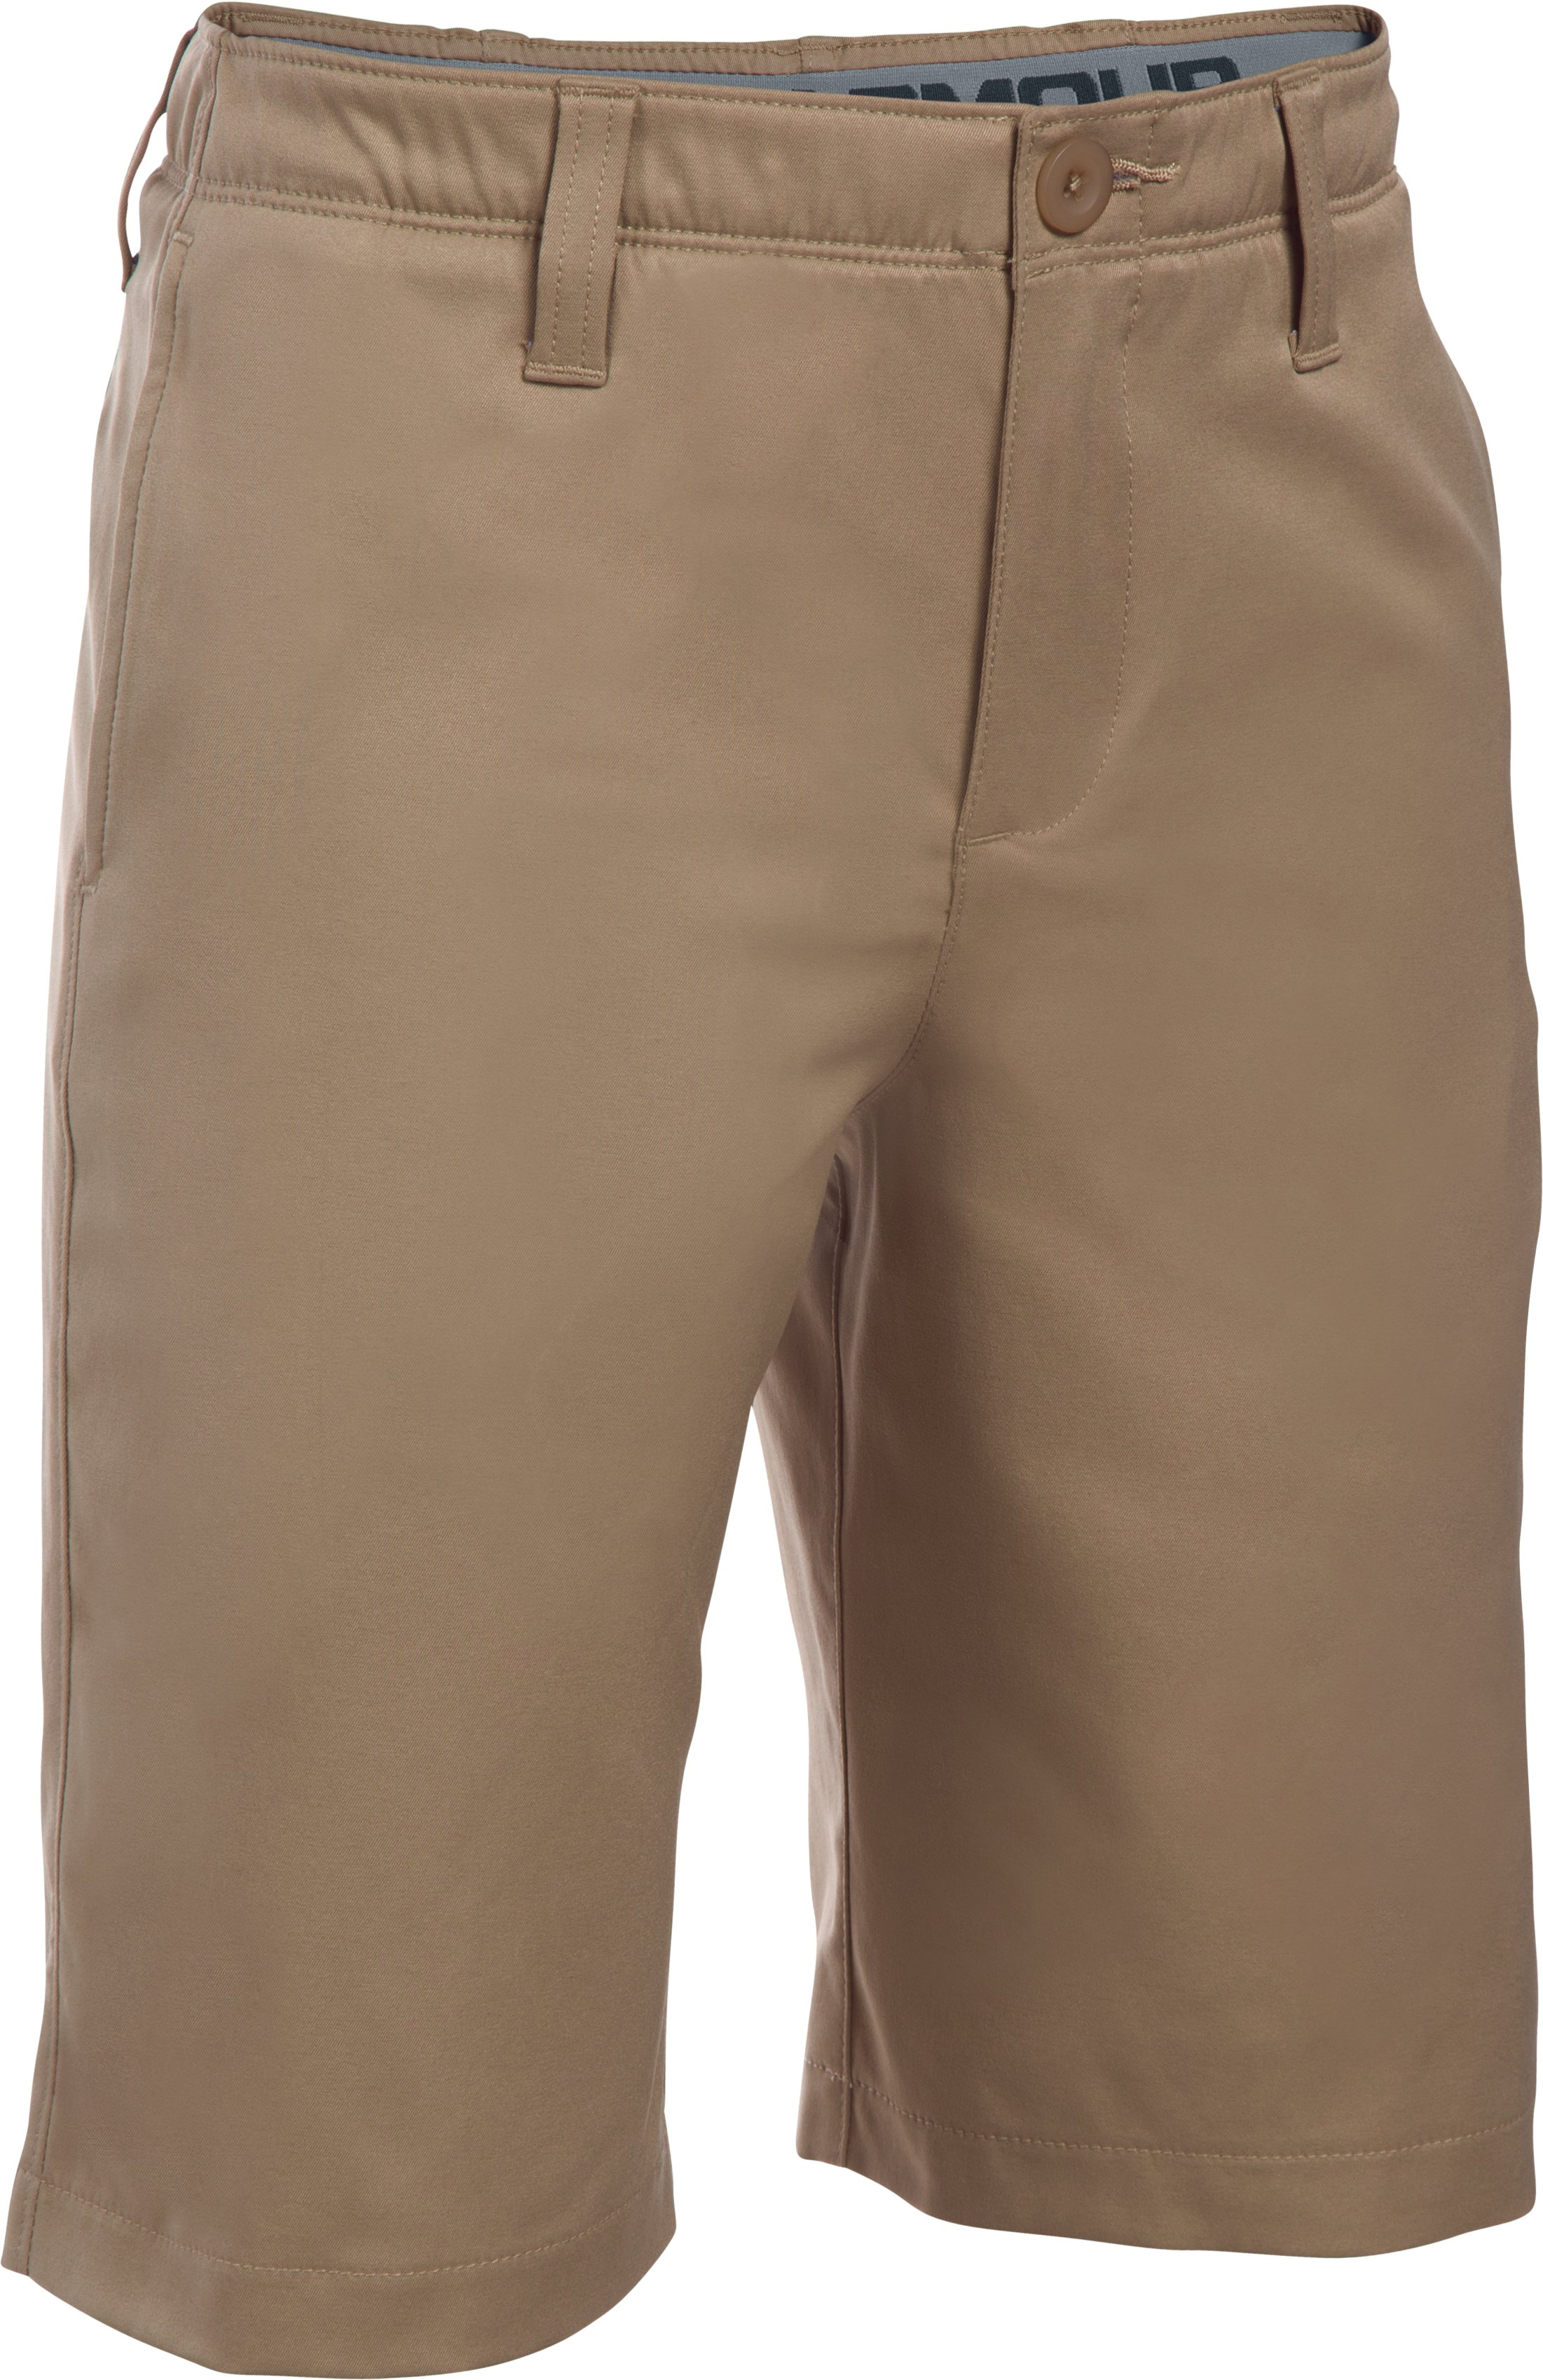 canvas shorts Boys' UA Match Play Shorts Great breathable fabric....My son has these and they are great!...Great look and fit!